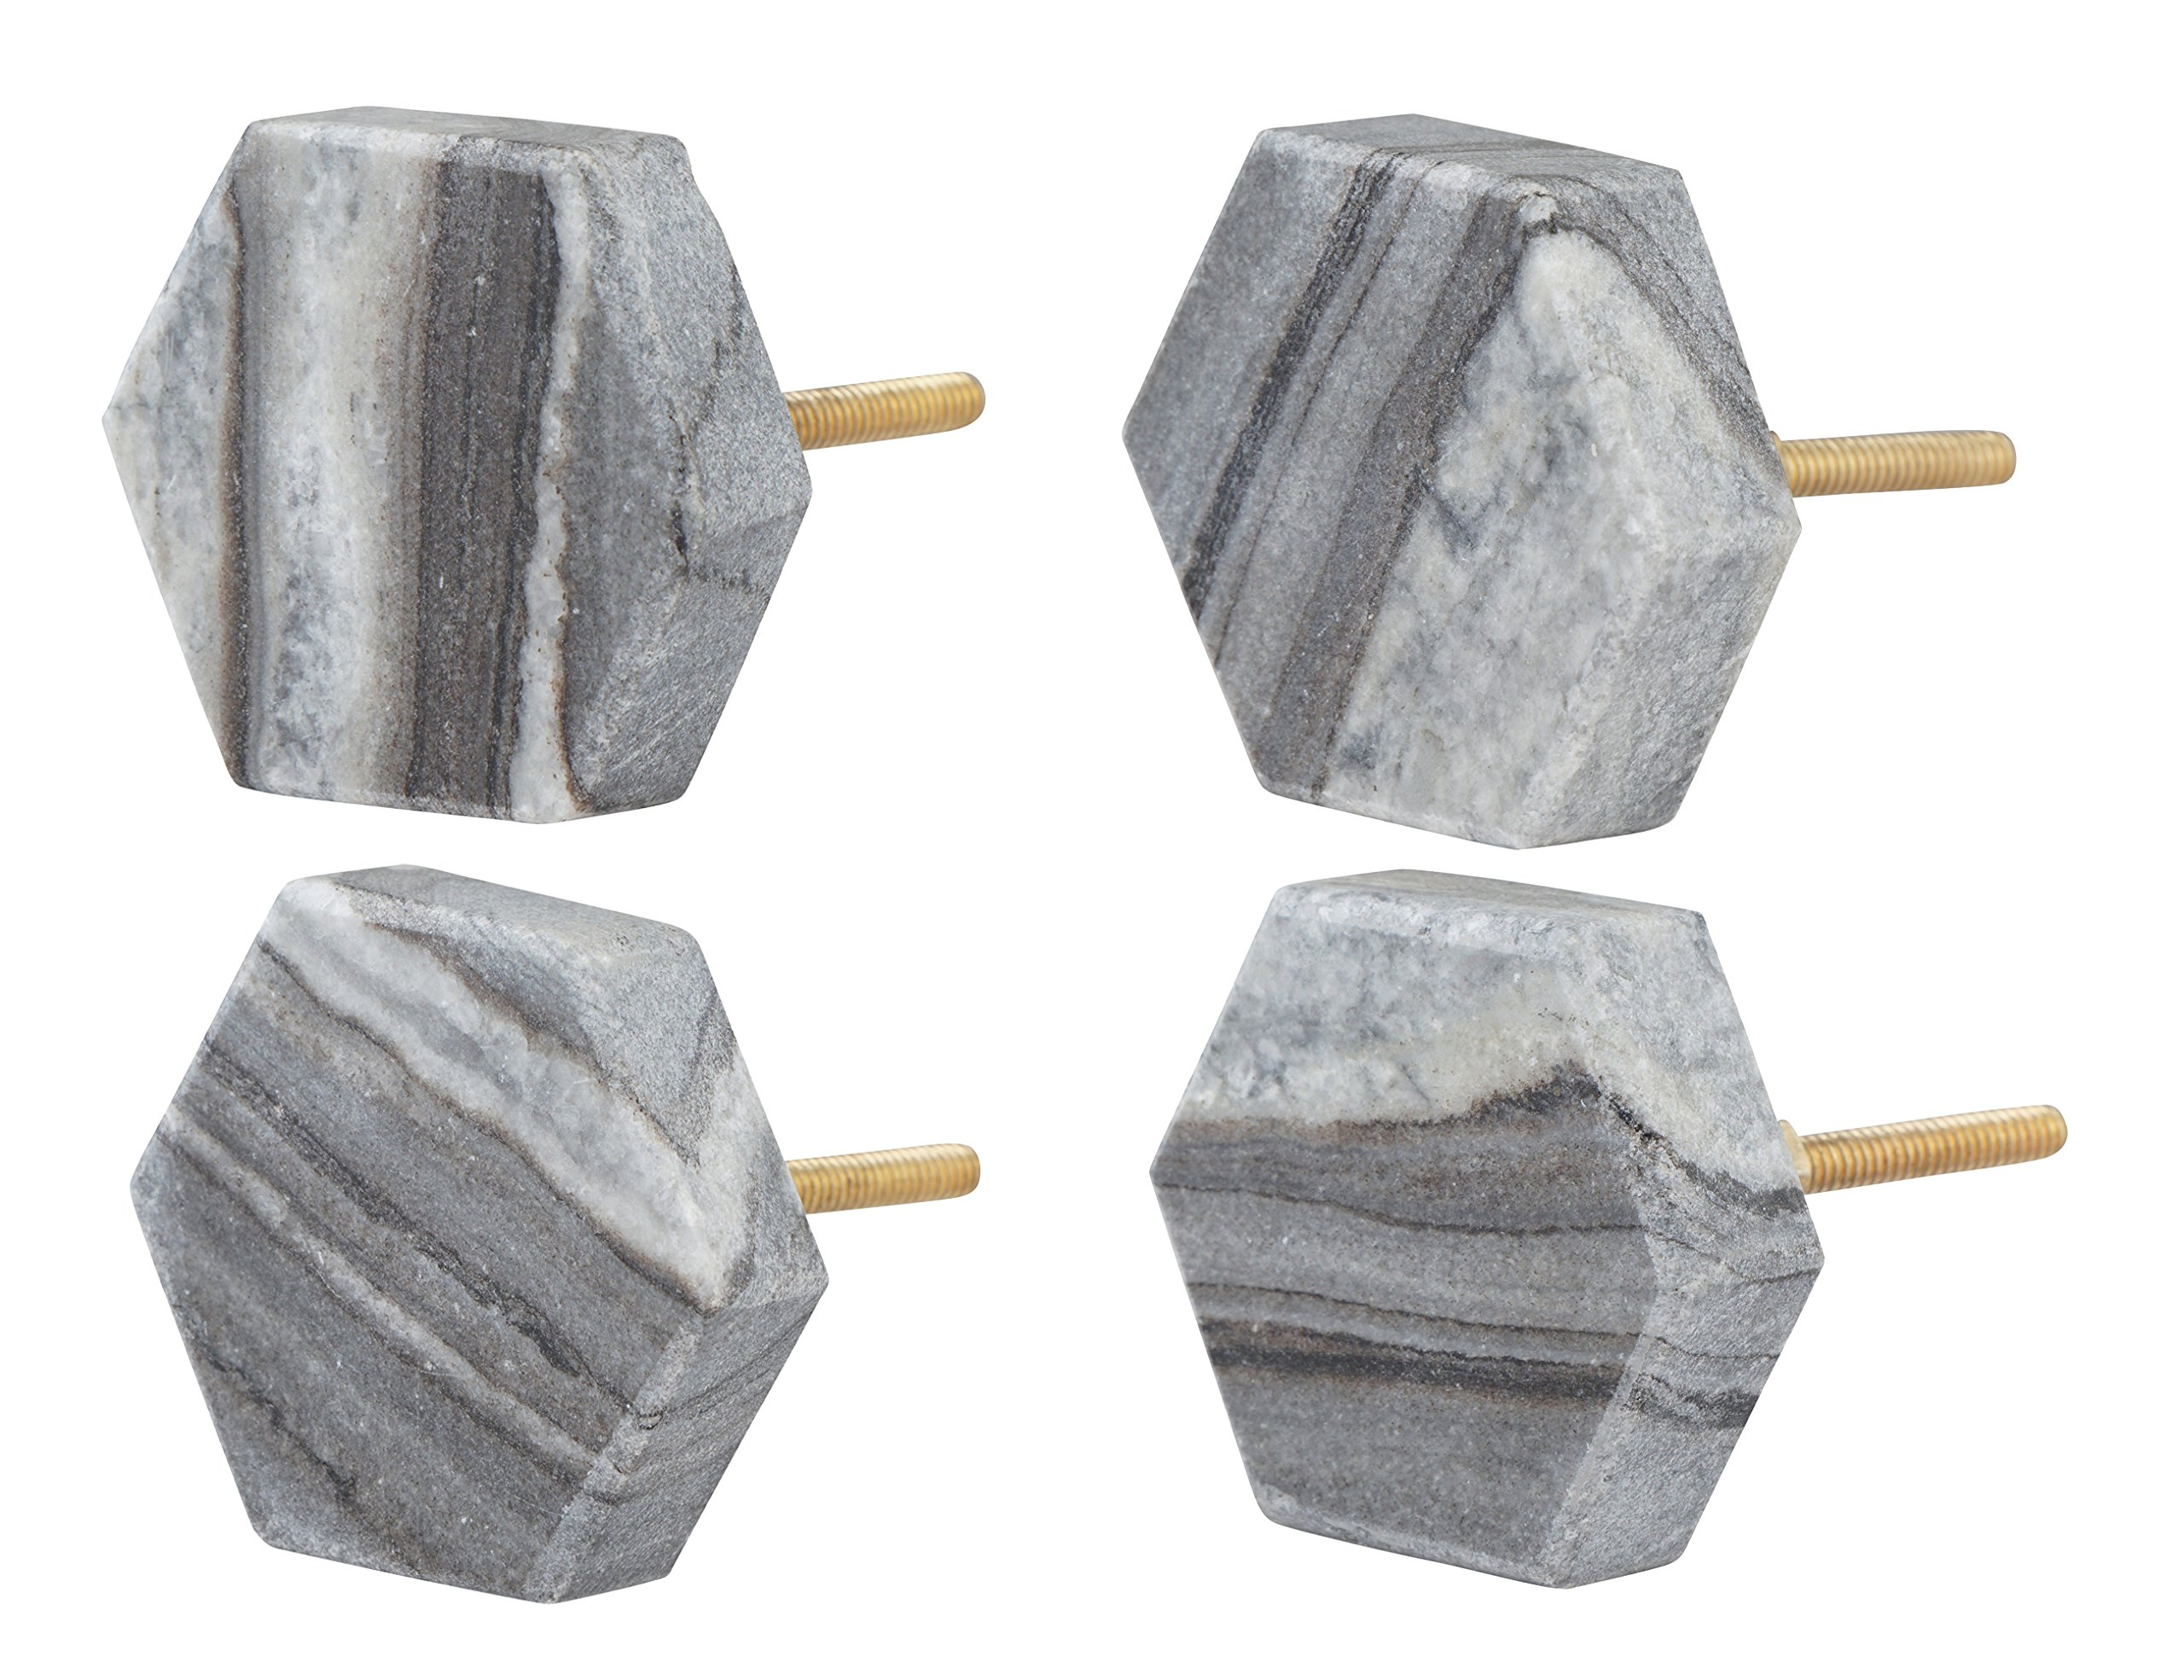 Set of 4 Gray Hexagon Marble Knobs – Decorative Drawer Pulls for Cabinets, Dressers, Desks – Handmade Geometric Natural Stone Novelty Cabinet Hardware for Kitchen, Bathroom by Artisanal Creations